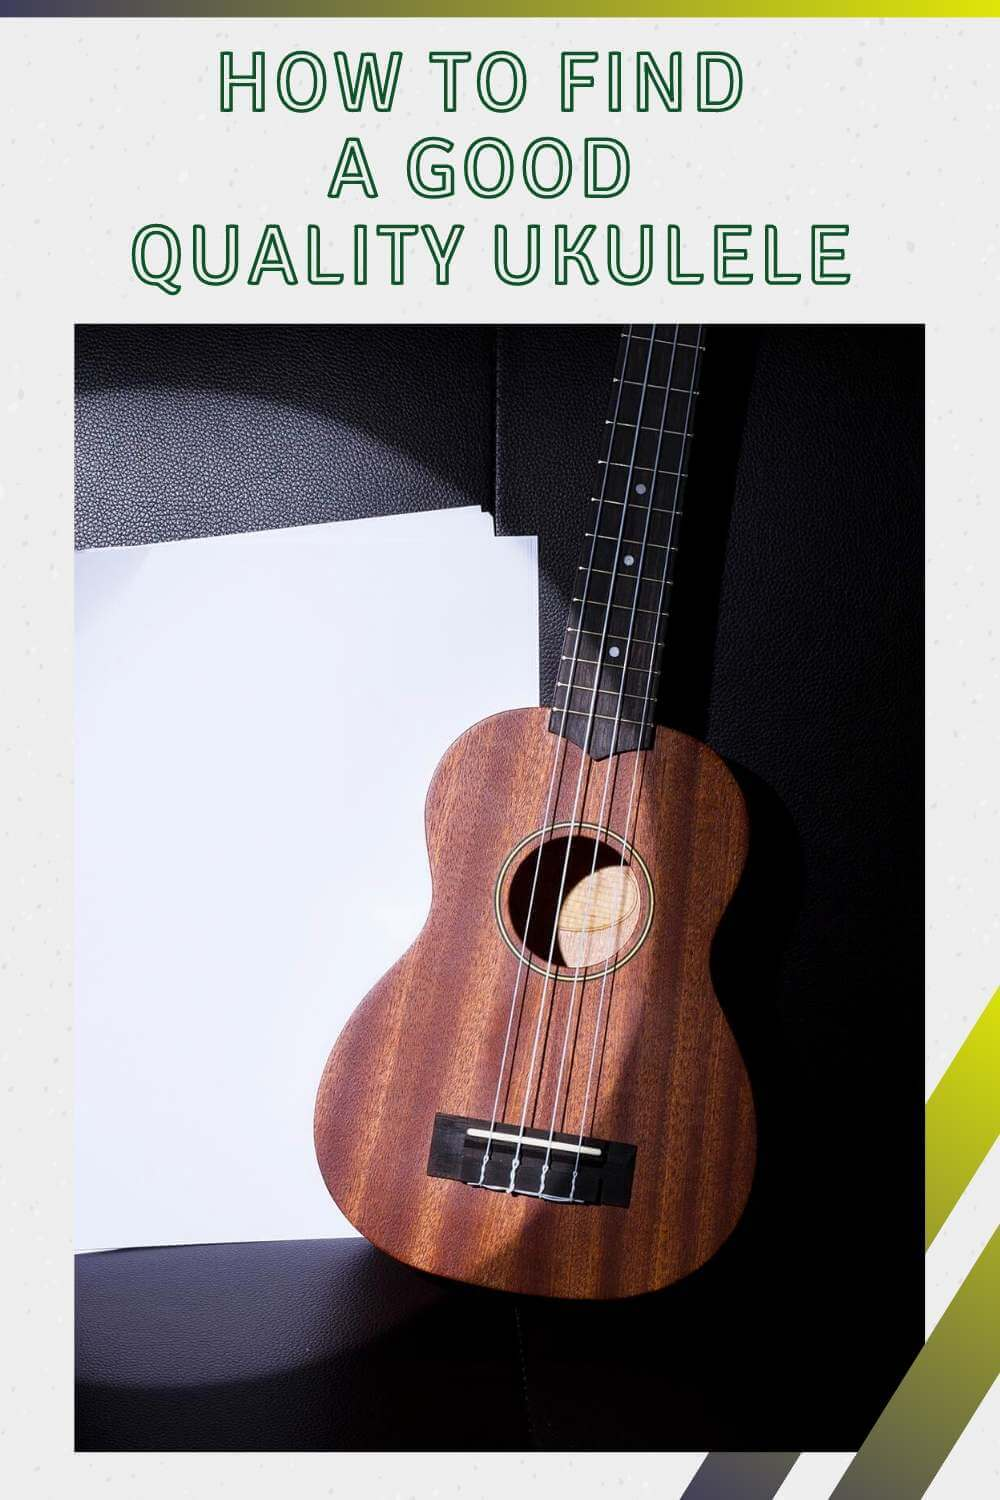 How to Find a Good Quality Ukulele